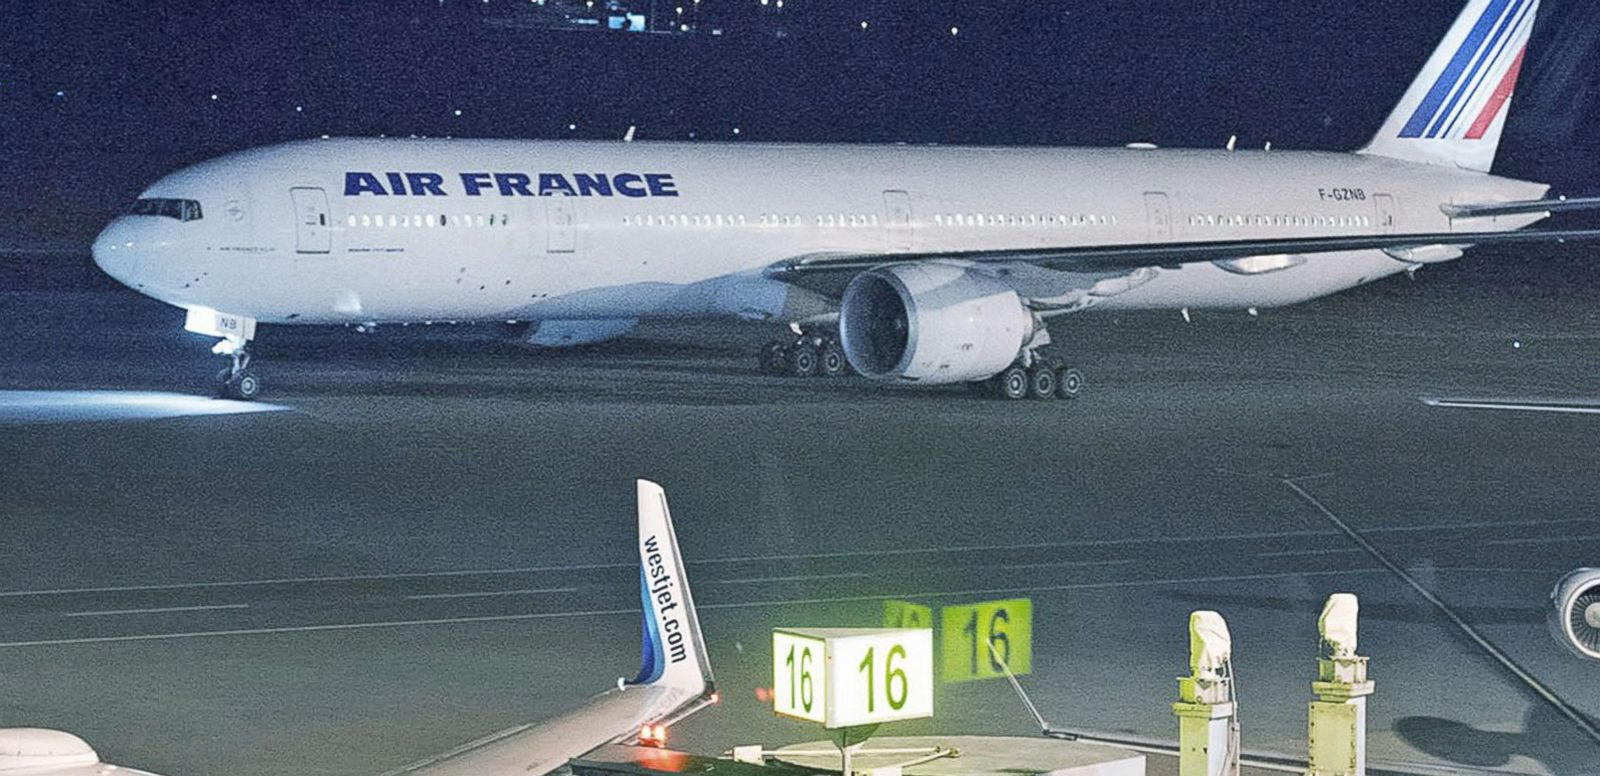 VIDEO: Air France Flights to Paris Diverted After Bomb Scare